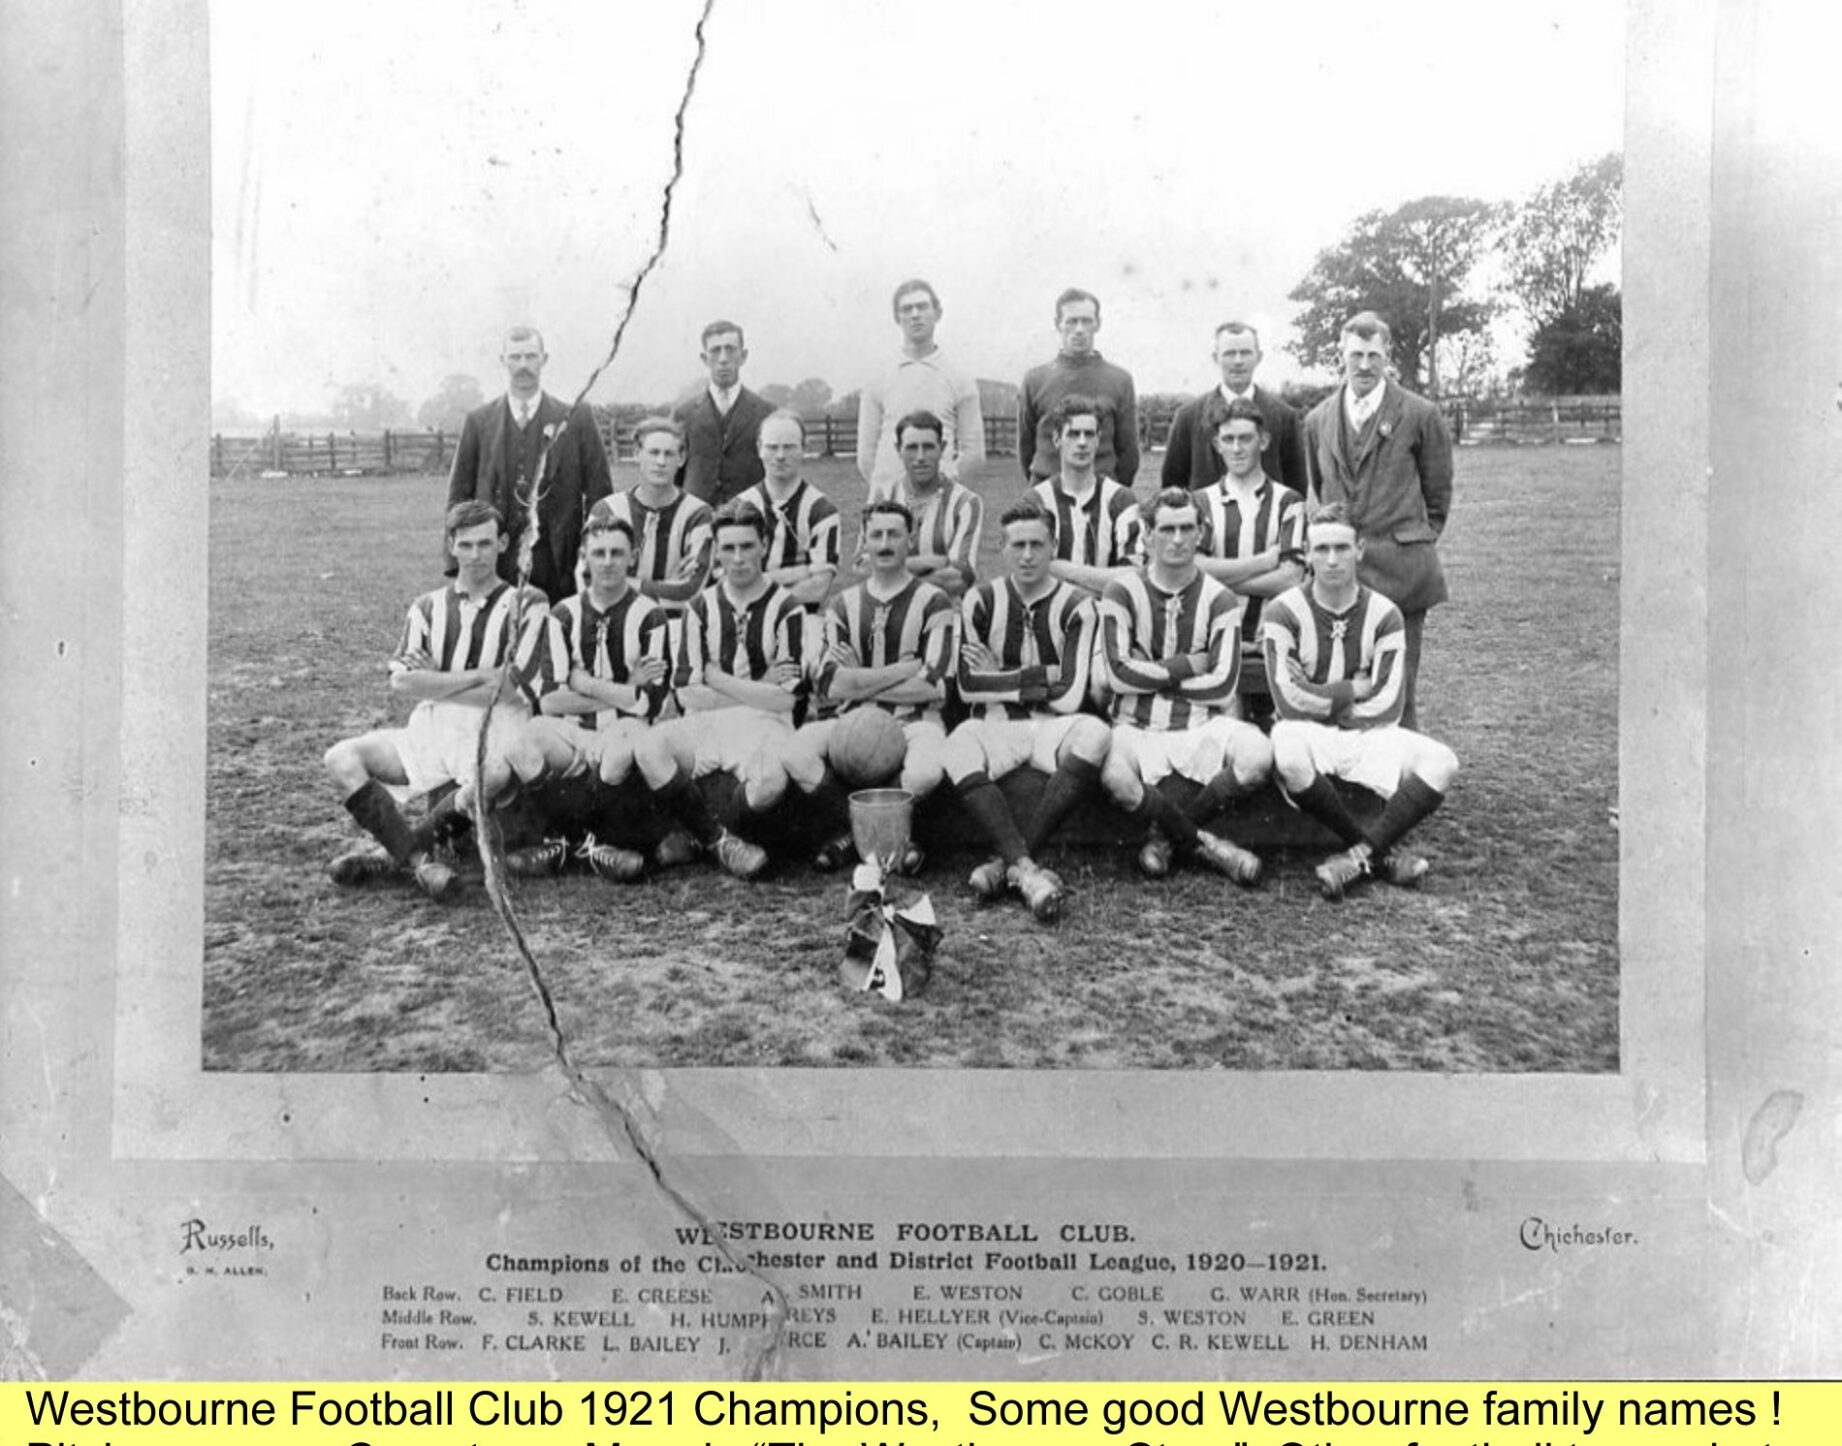 WESTBOURNE HISTORY PHOTO, WESTBOURNE FOOTBALL CLUB, 1921, PITCH FAMILY NAMES